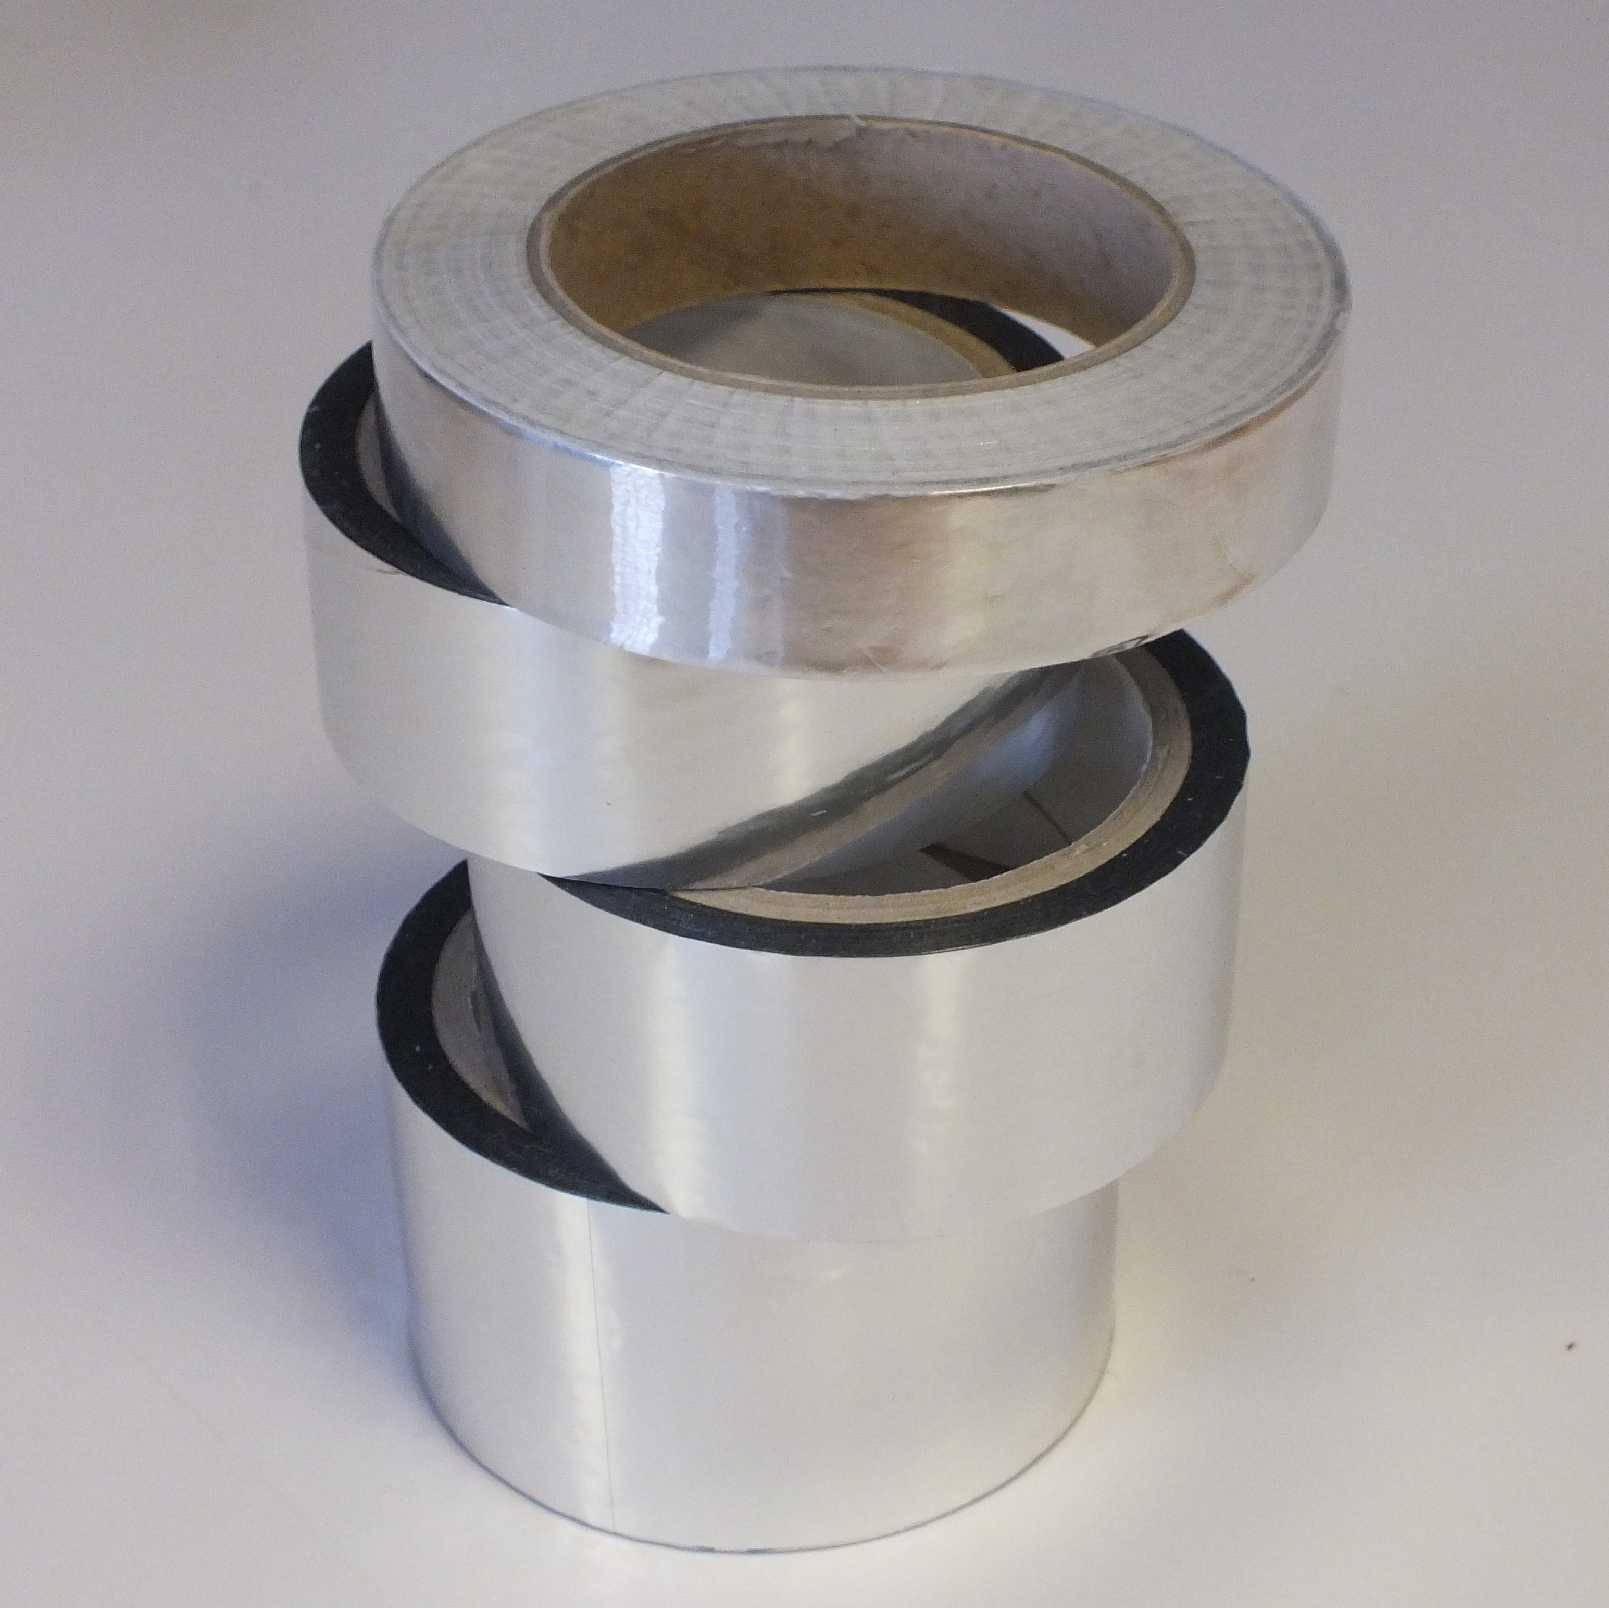 Glazed Roof Components Aluminium Tape For Closing The